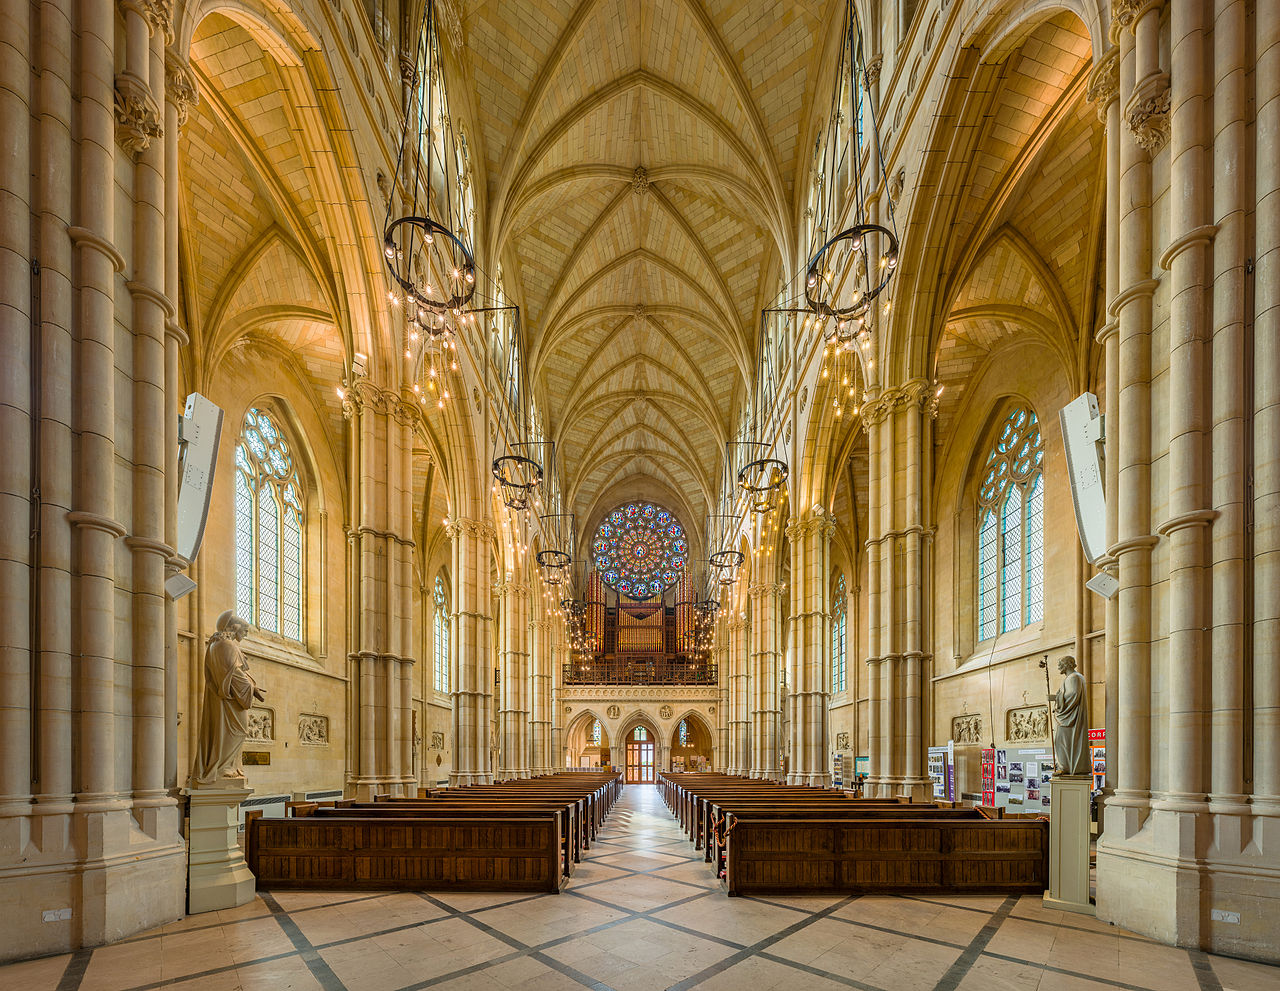 The nave of Arundel Cathedral looking west, in West Sussex, England. Credit David Iliff